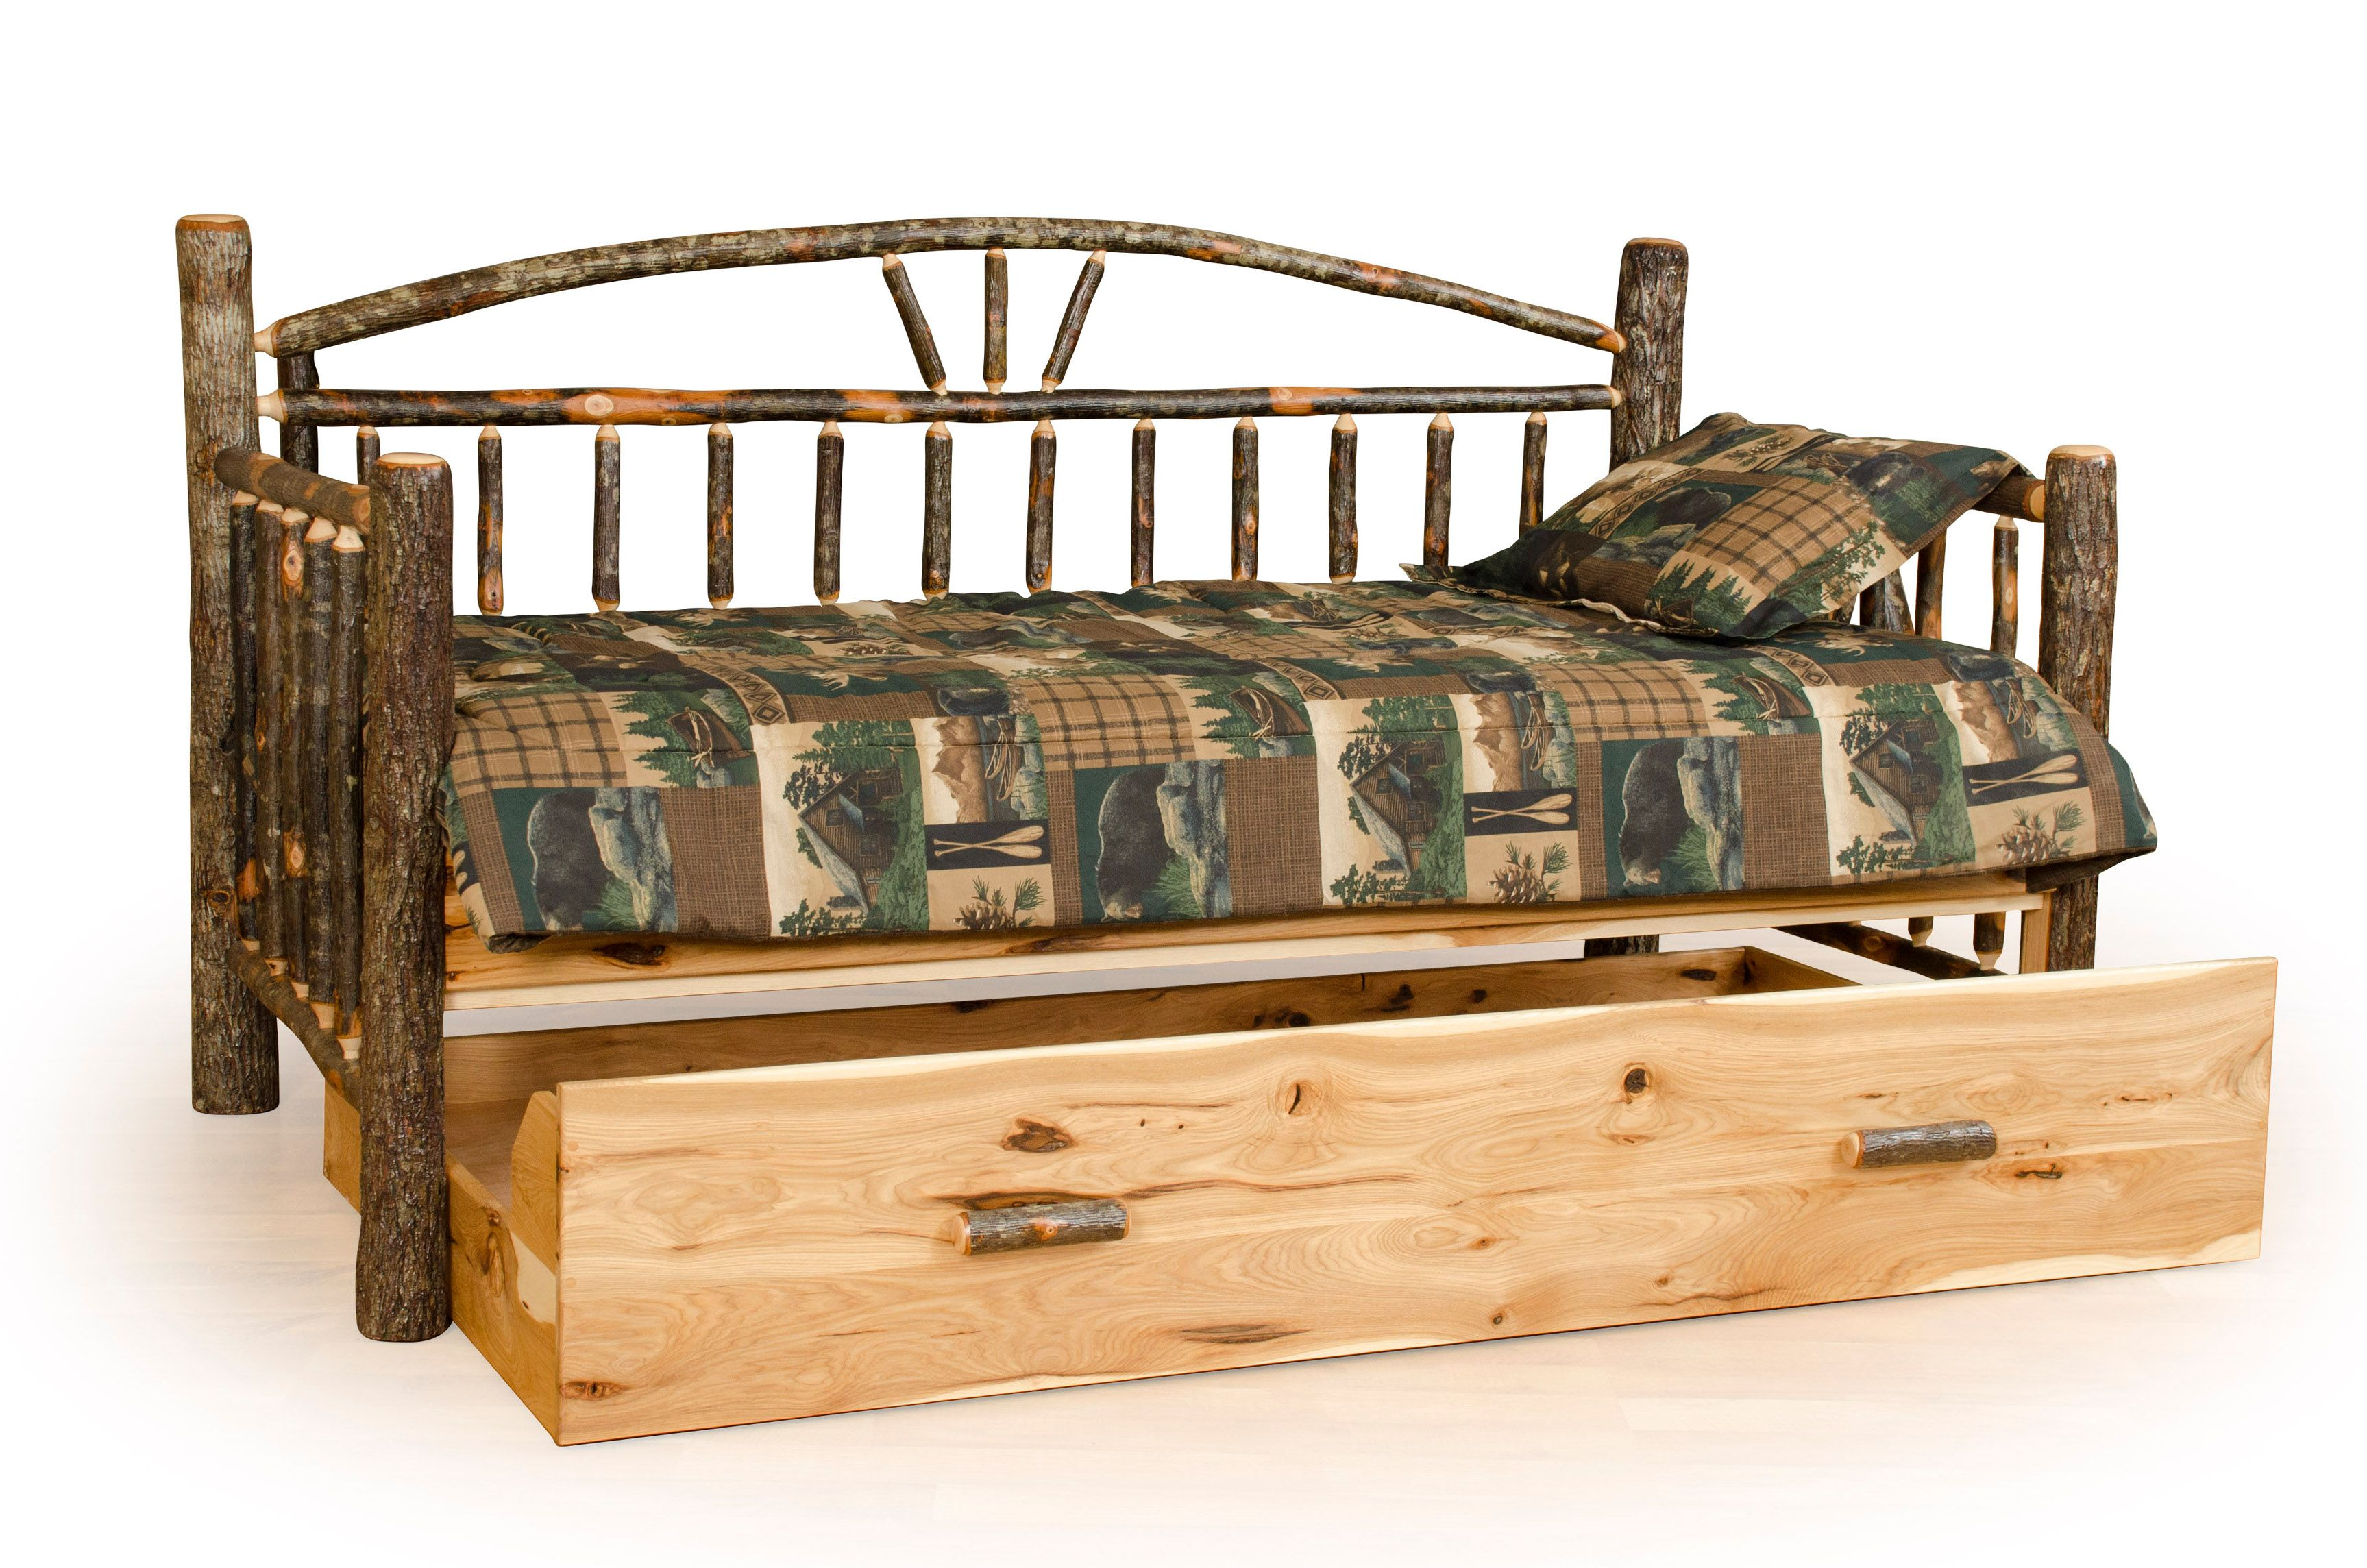 Rustic Hickory Log Day Bed with Trundle Rustic daybeds